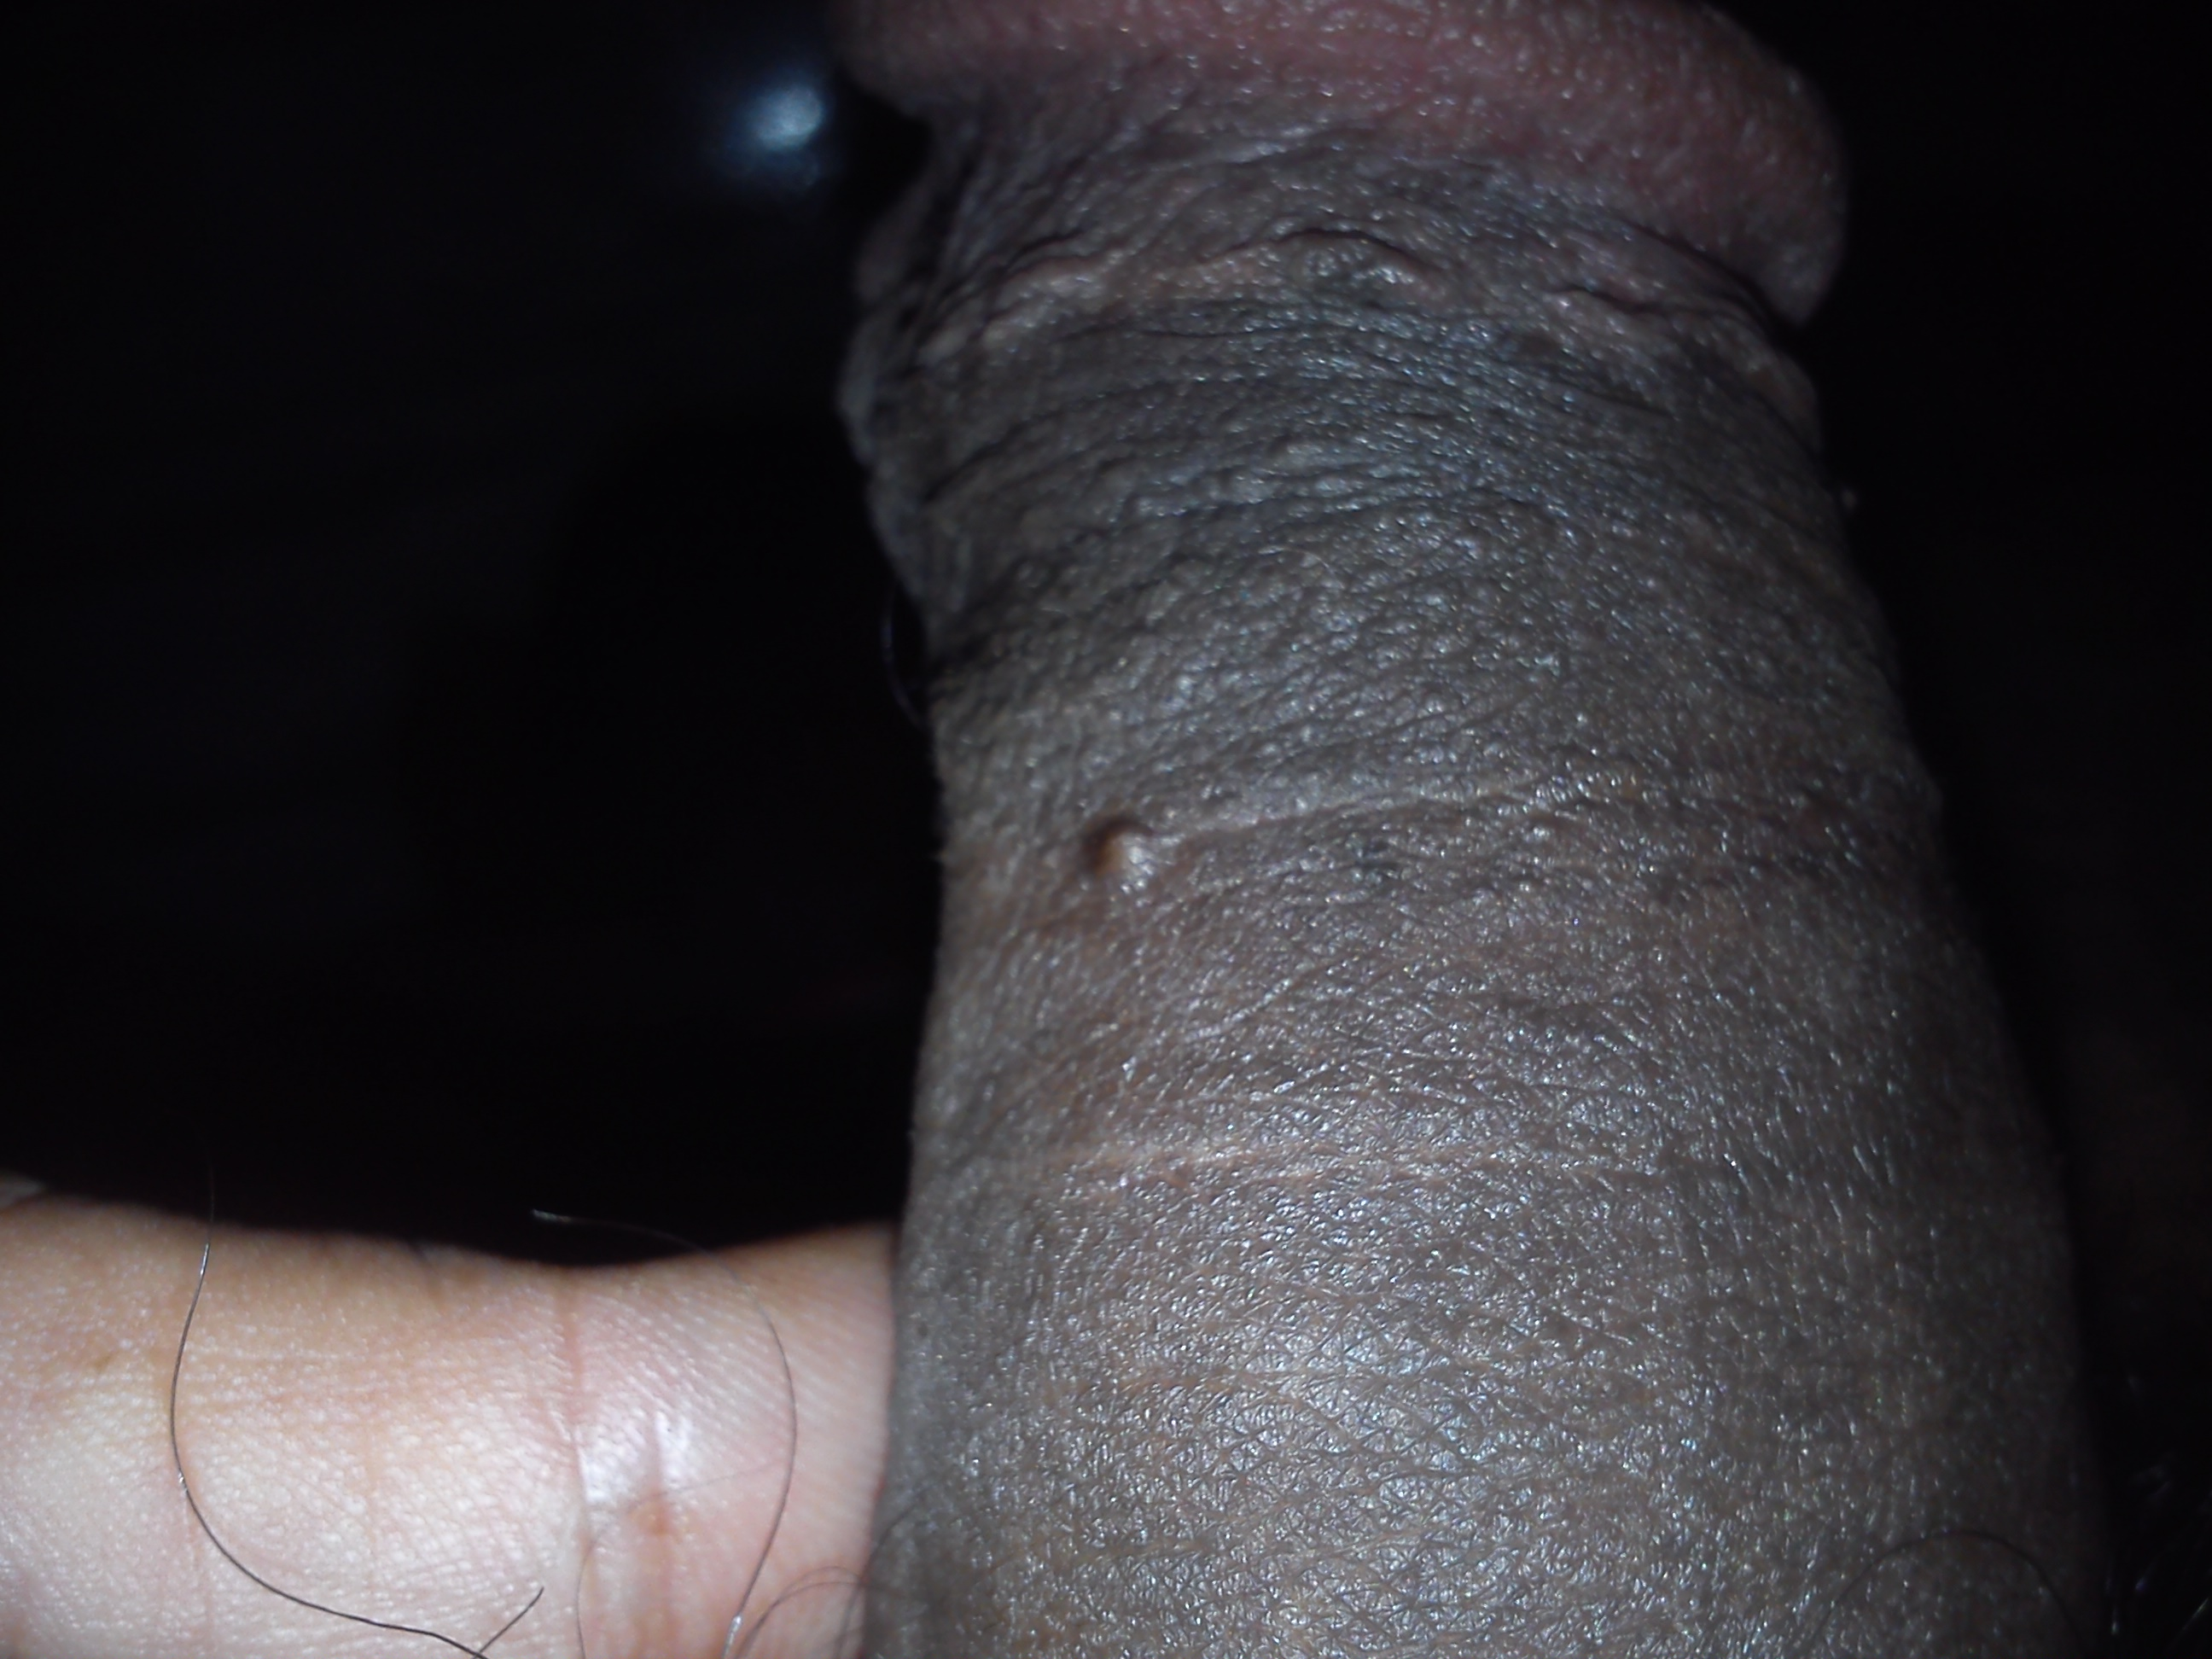 I have a bump on my dick